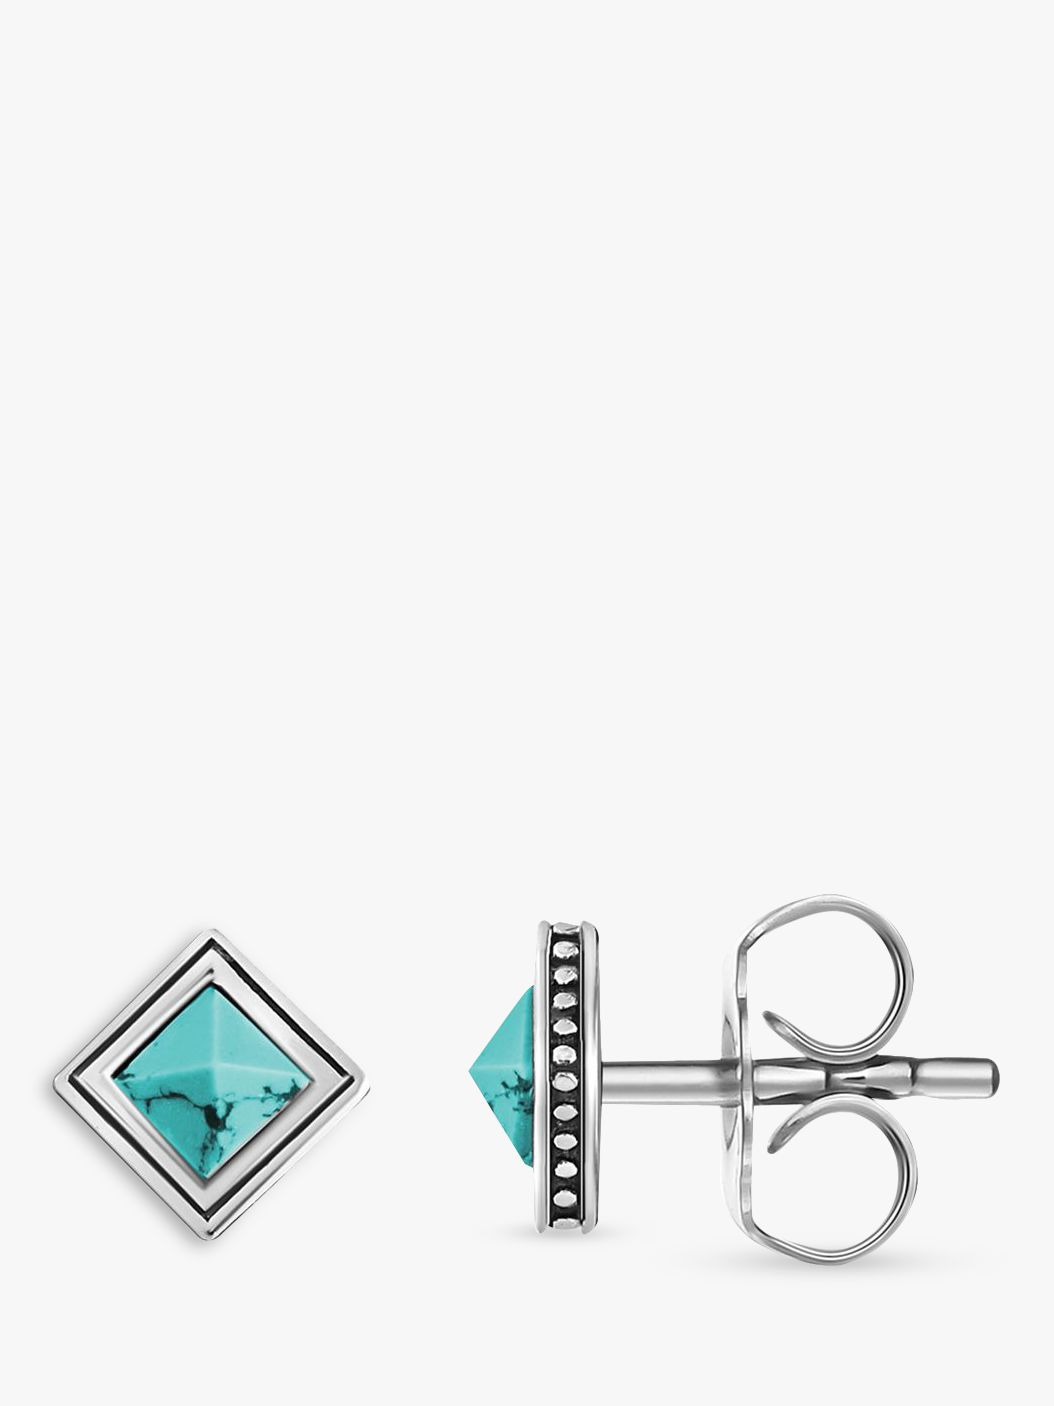 Thomas Sabo THOMAS SABO Africa Square Stud Earrings, Turquoise